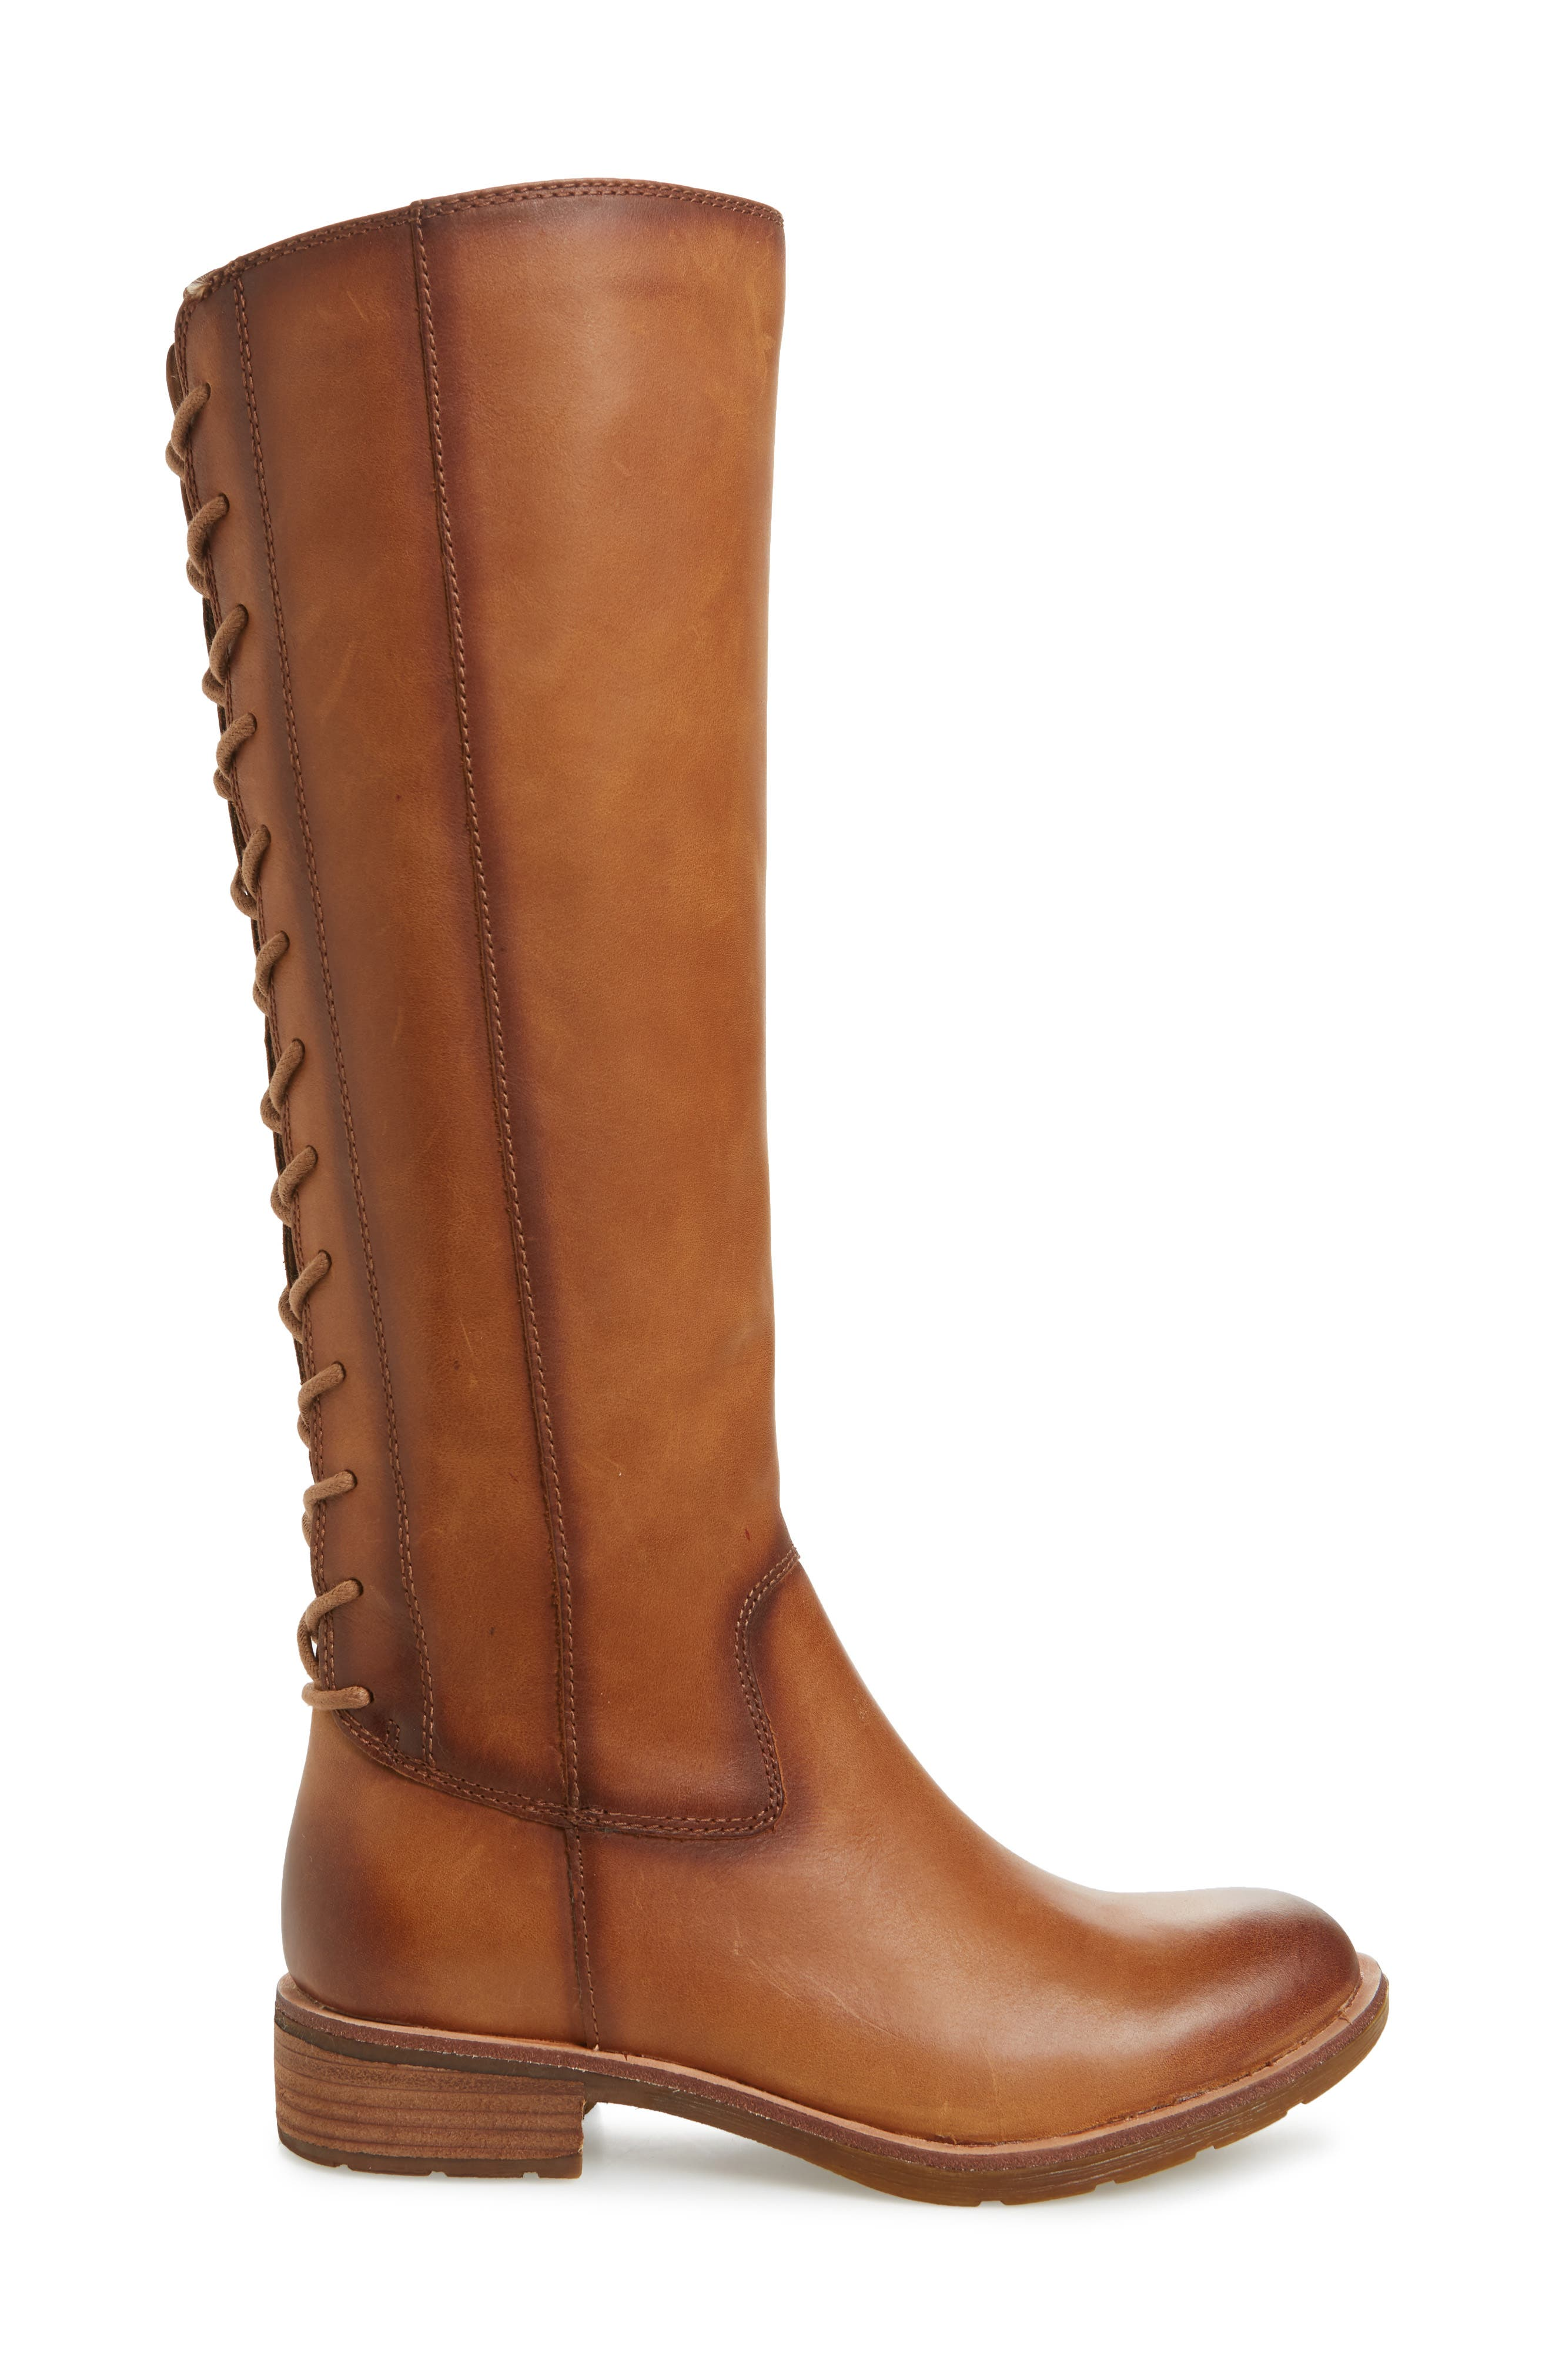 Sharnell II Knee High Boot,                             Alternate thumbnail 3, color,                             BISCUIT LEATHER